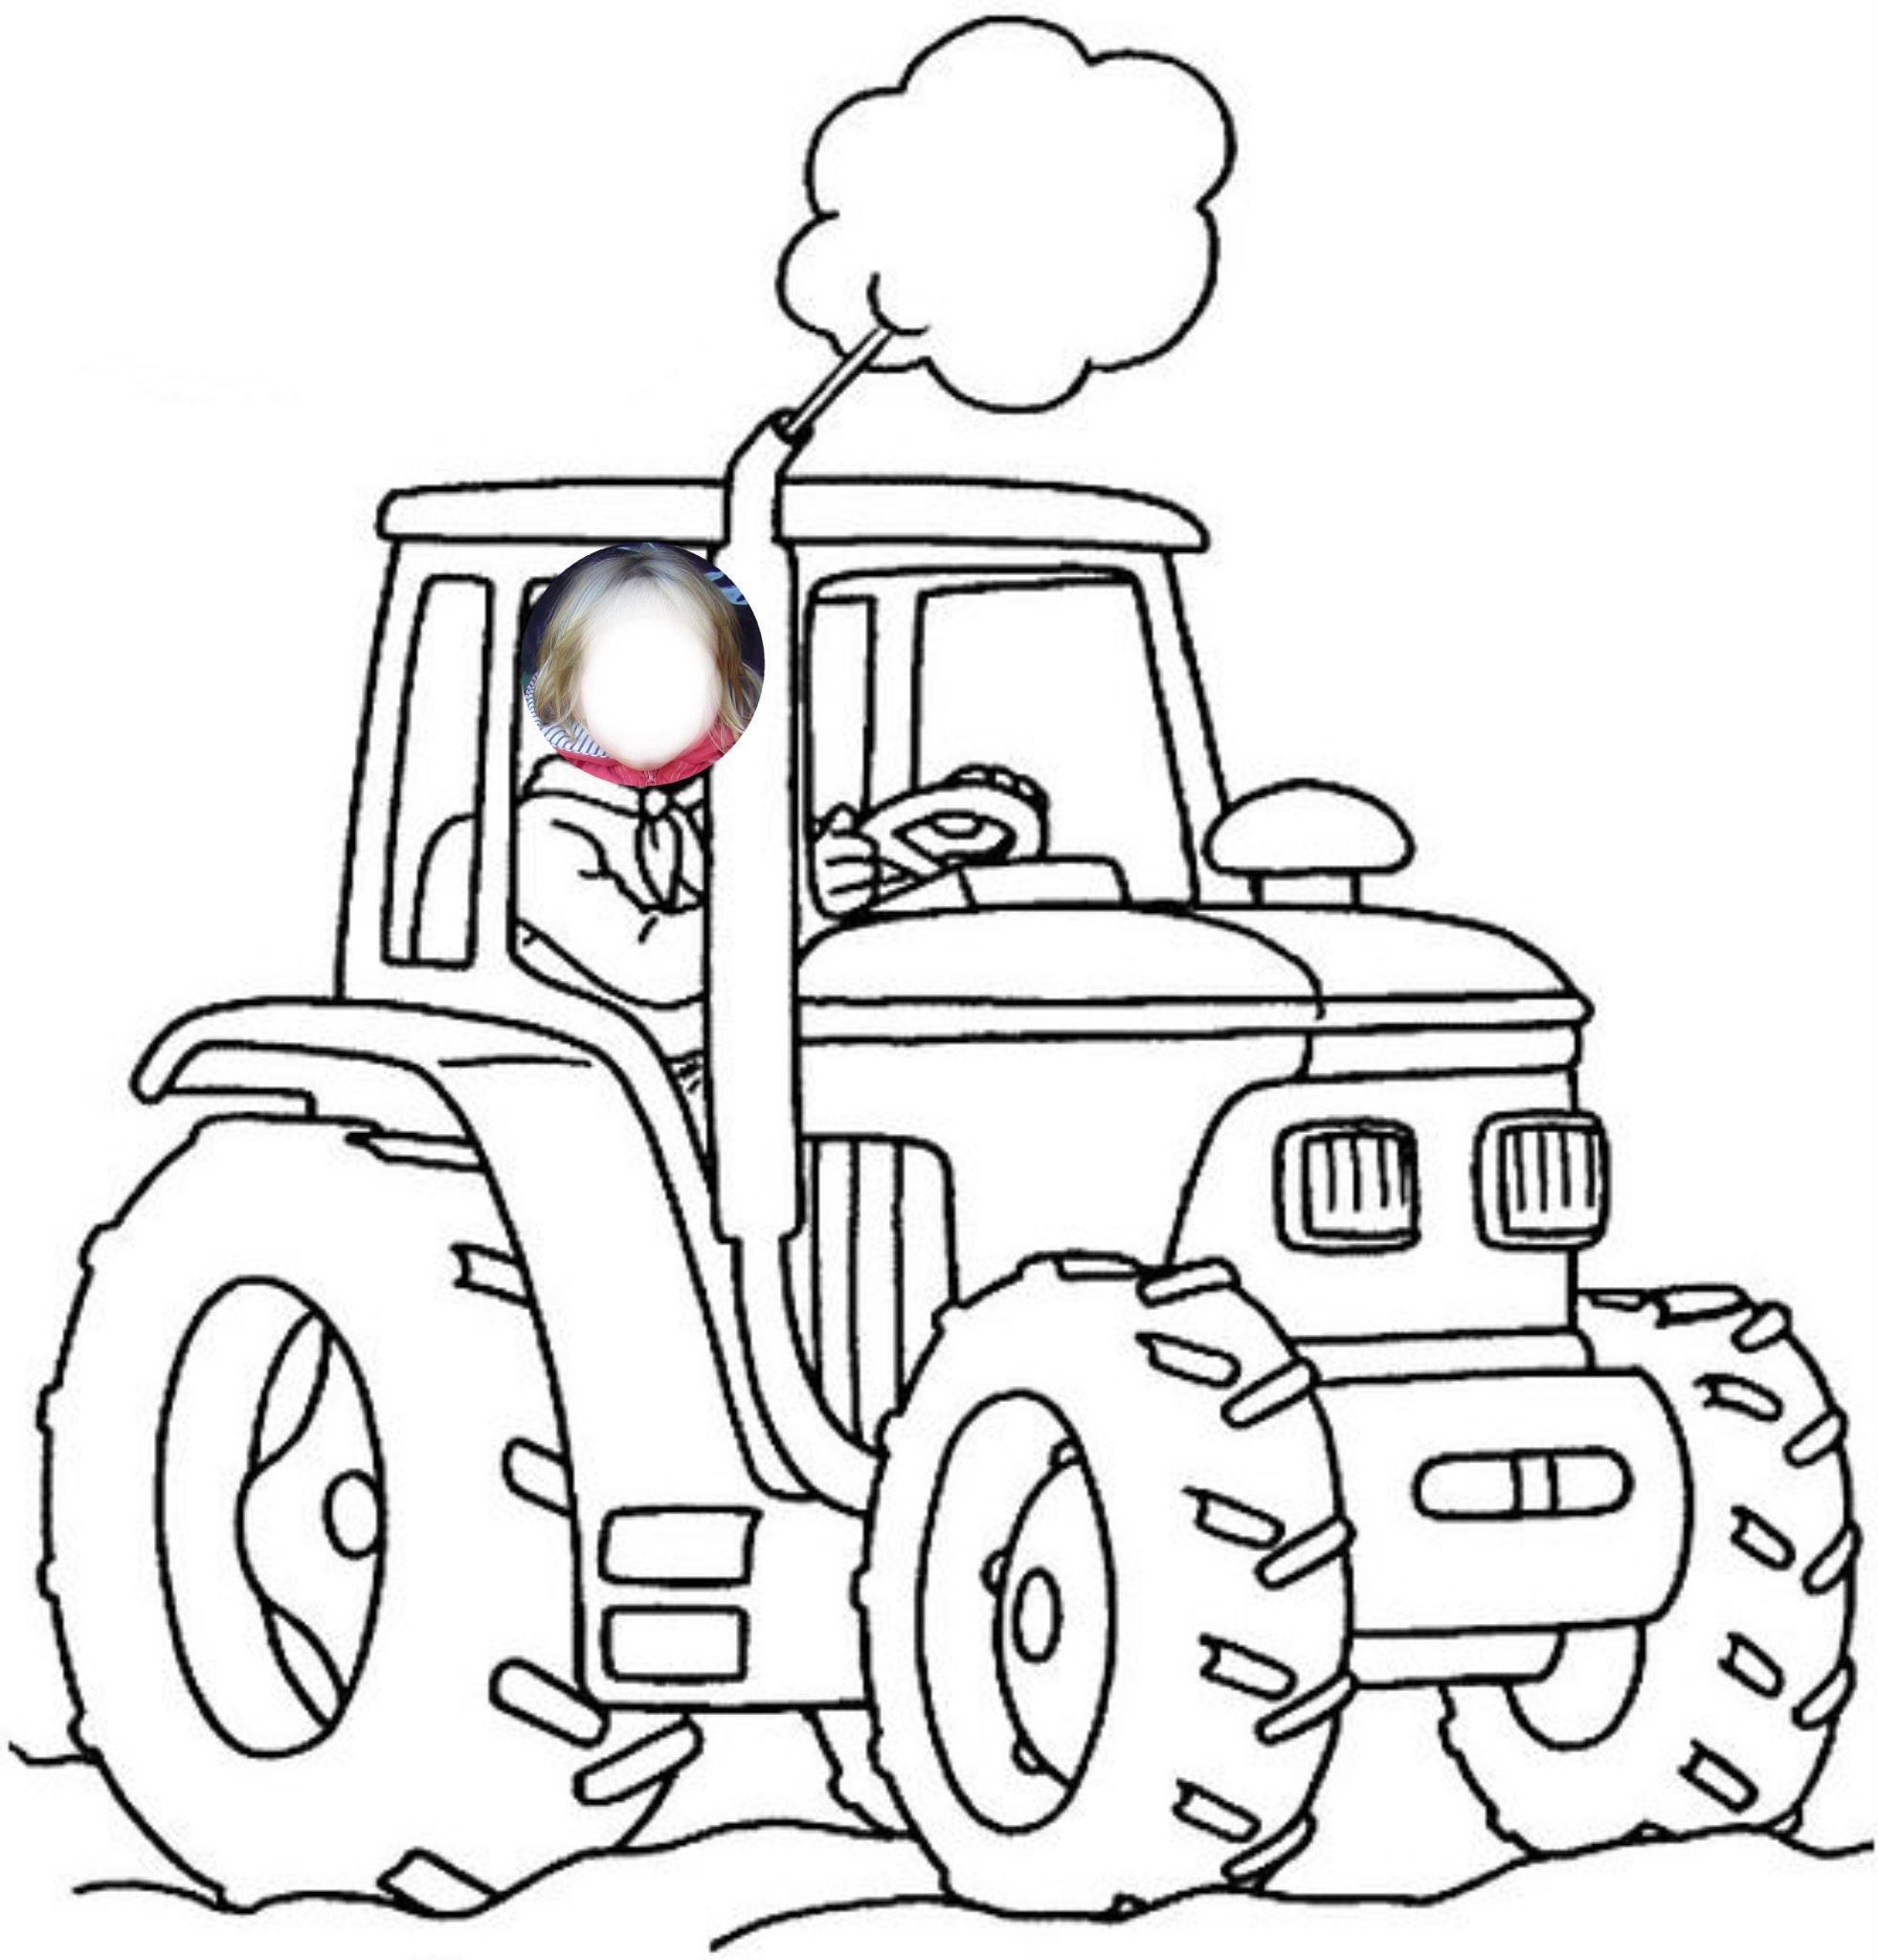 Get free high quality hd wallpapers imprimer coloriage tracteur tom